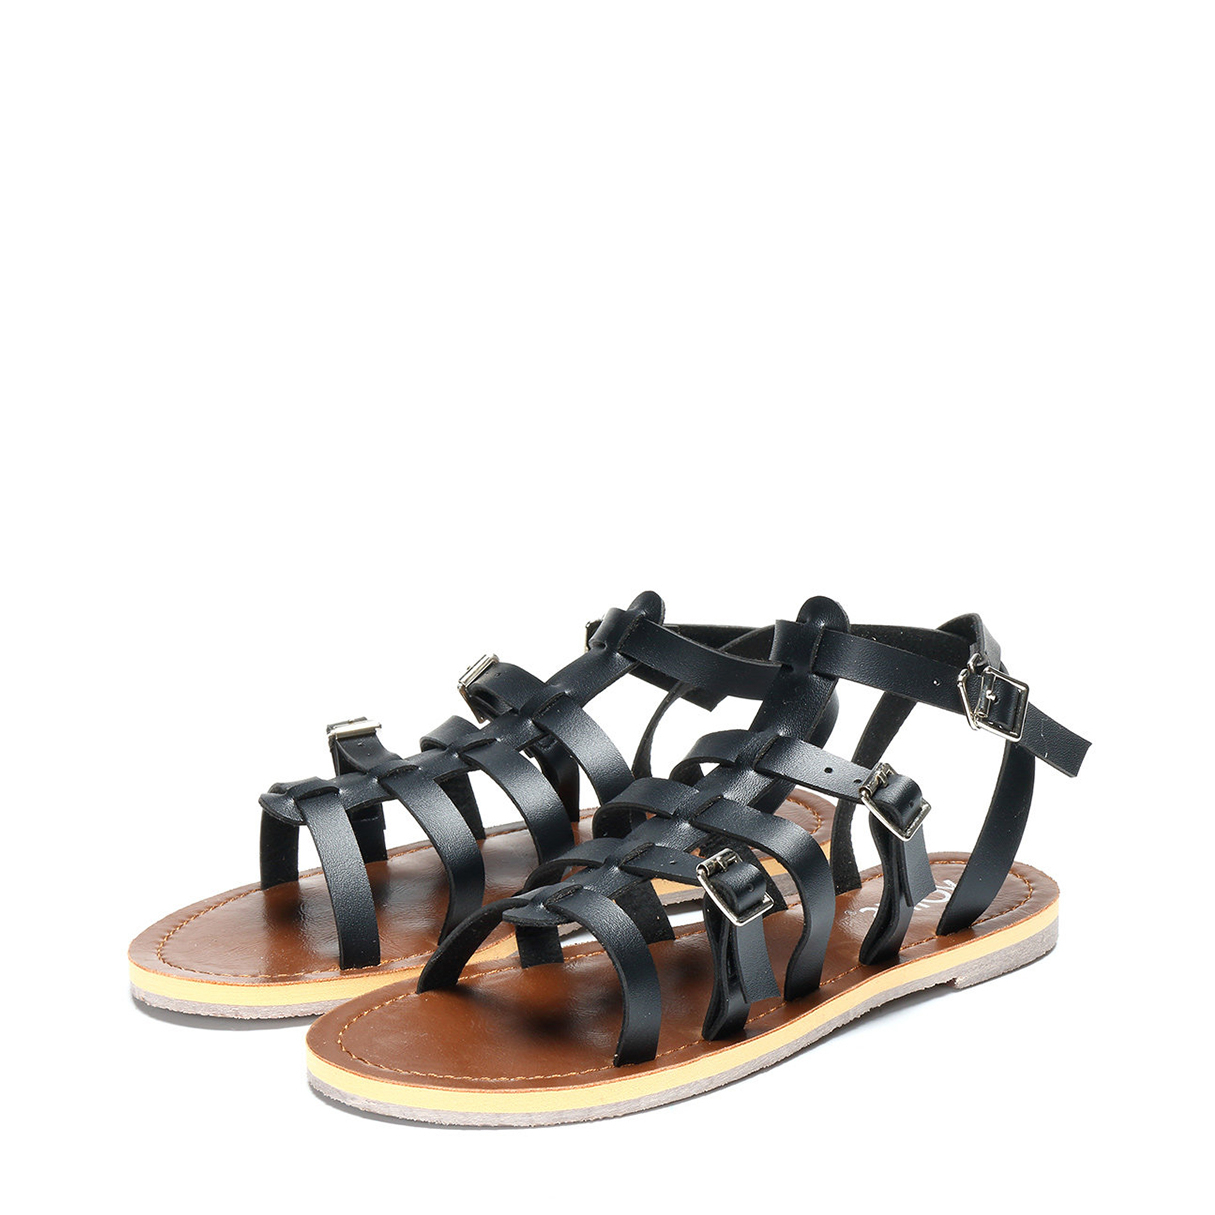 Black Strappy Buckle Design Flat Sandals